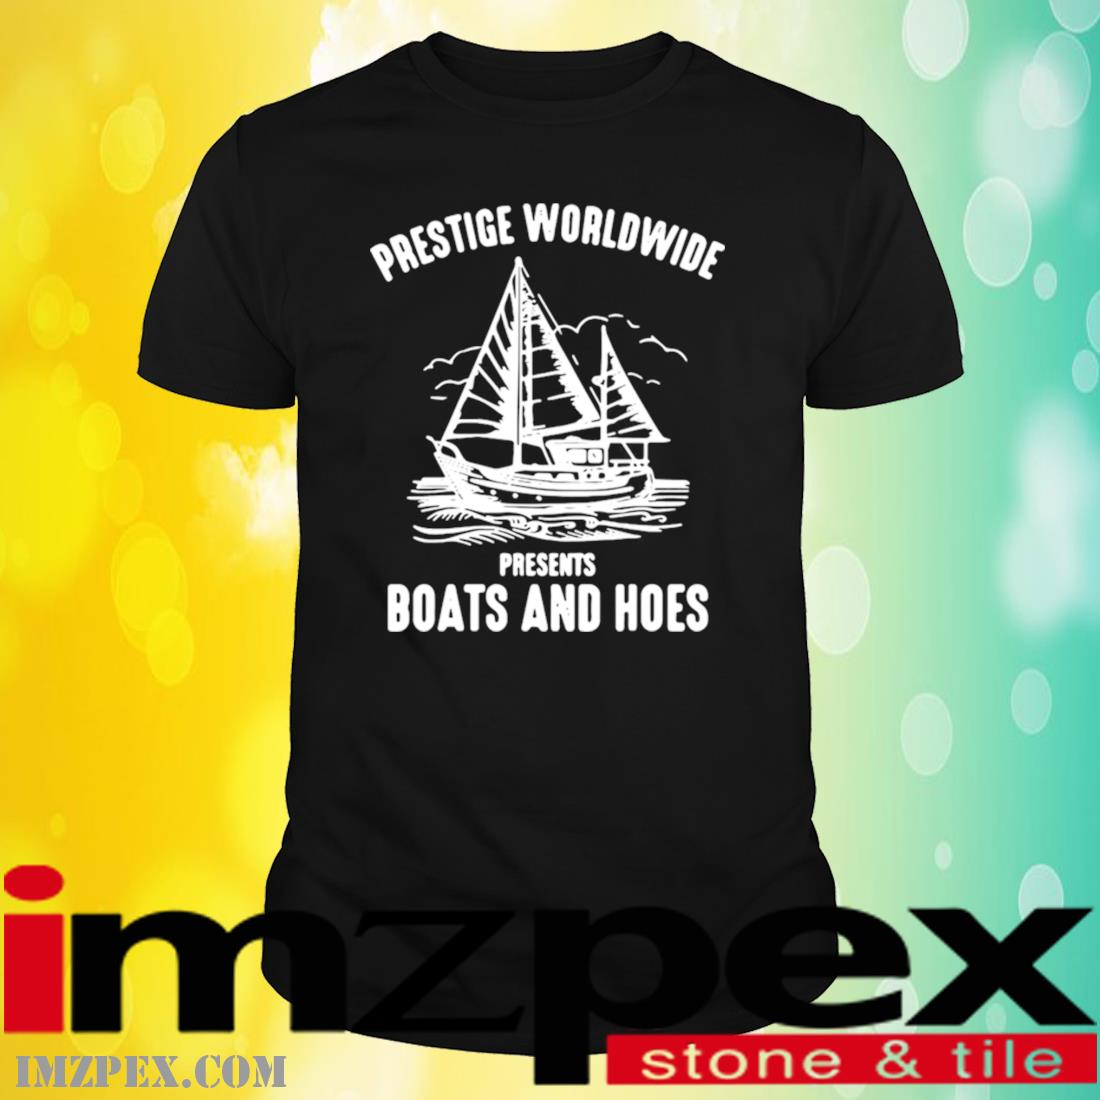 Prestige Worldwide Presents Boats And Hoes Shirt